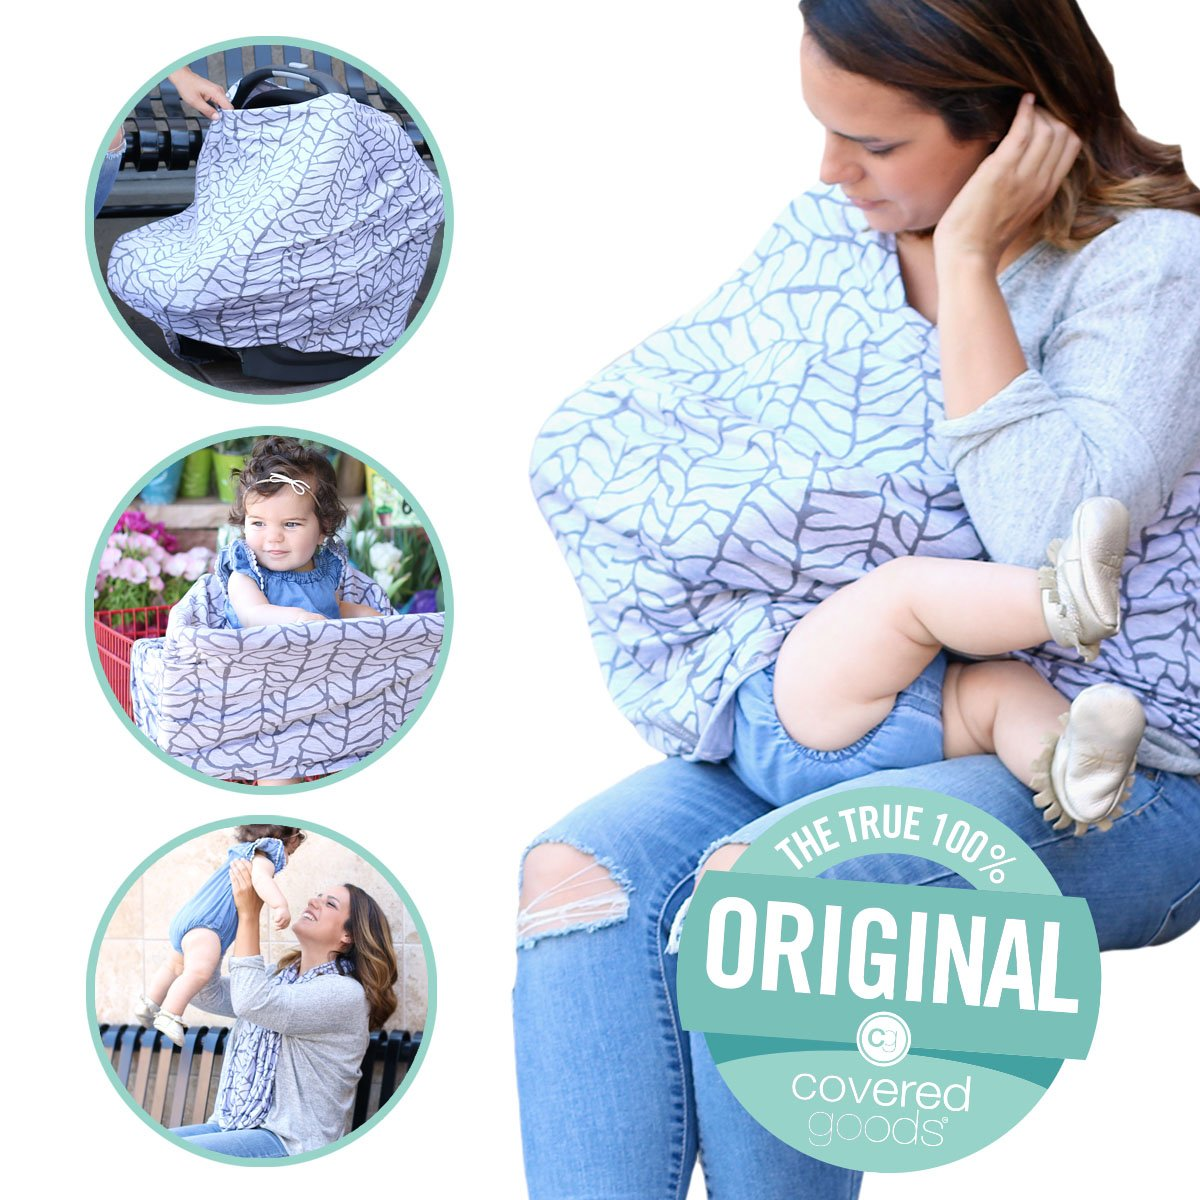 Covered Goods - The Original Multi Use Maternity Breastfeeding Nursing Cover, Infinity Scarf, and Car Seat Cover - Roots